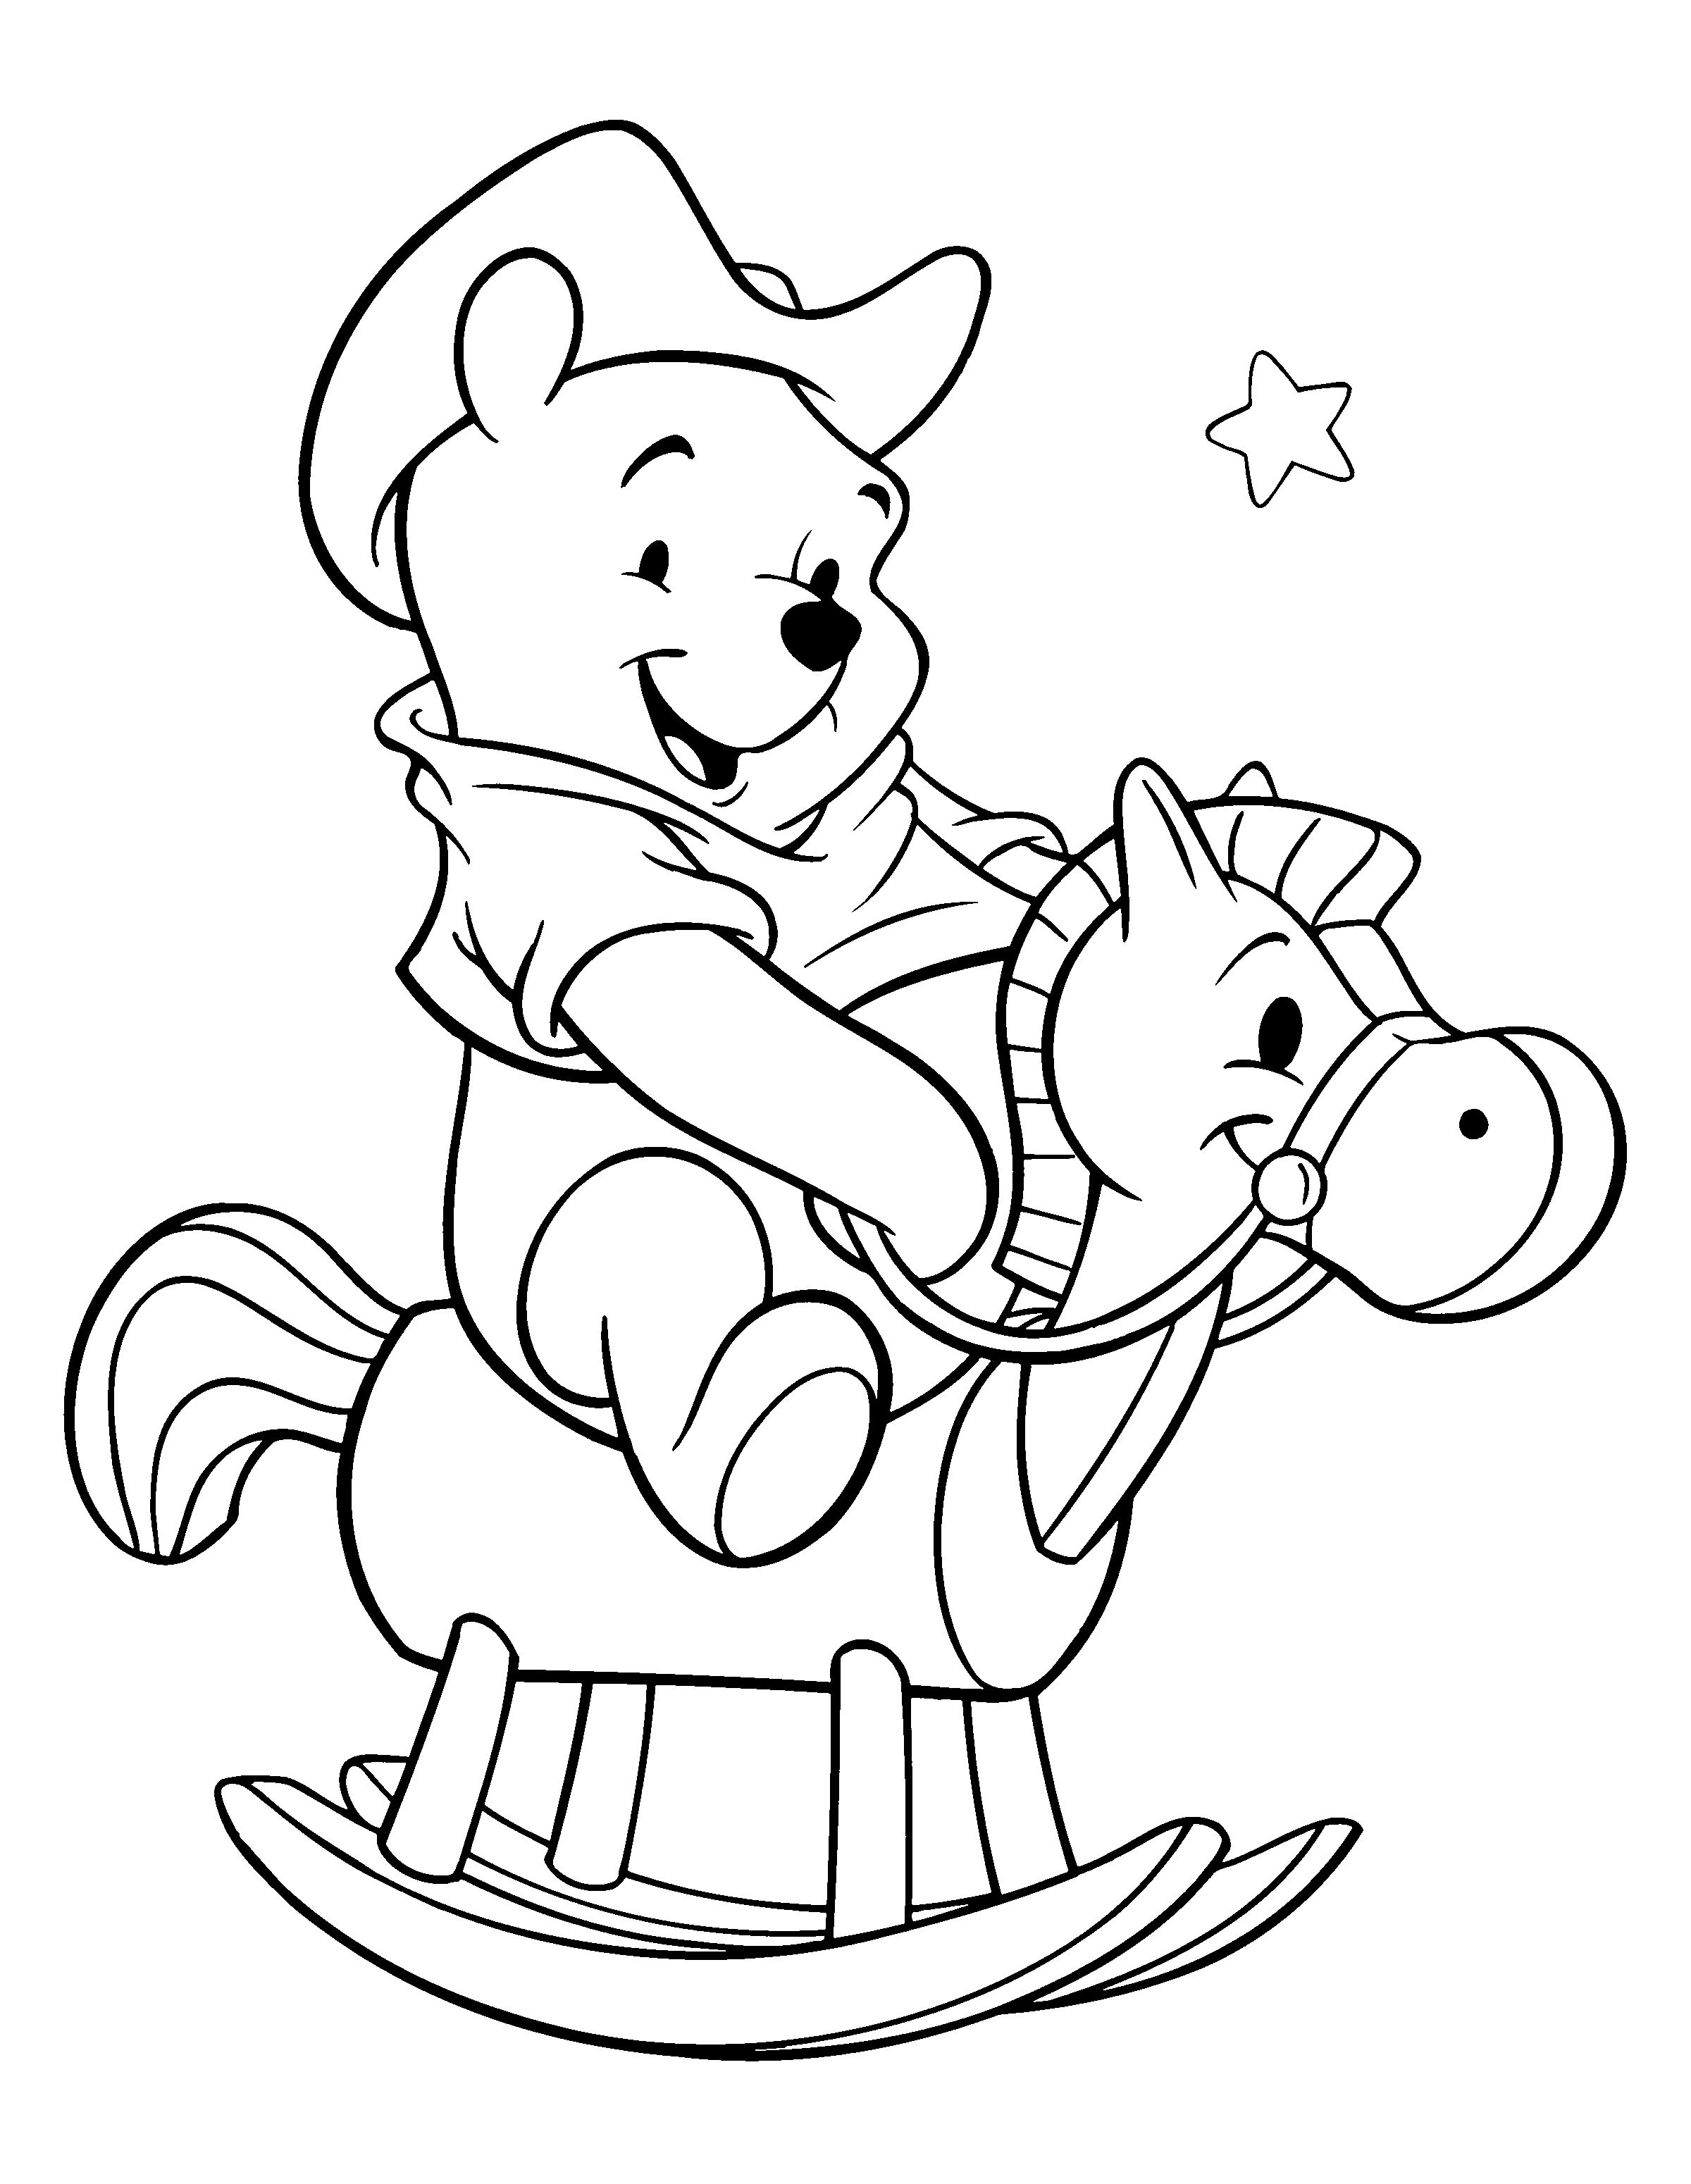 Pin By Pamela Langdon On Winnie Pooh Disney Coloring Pages Cartoon Coloring Pages Horse Coloring Pages